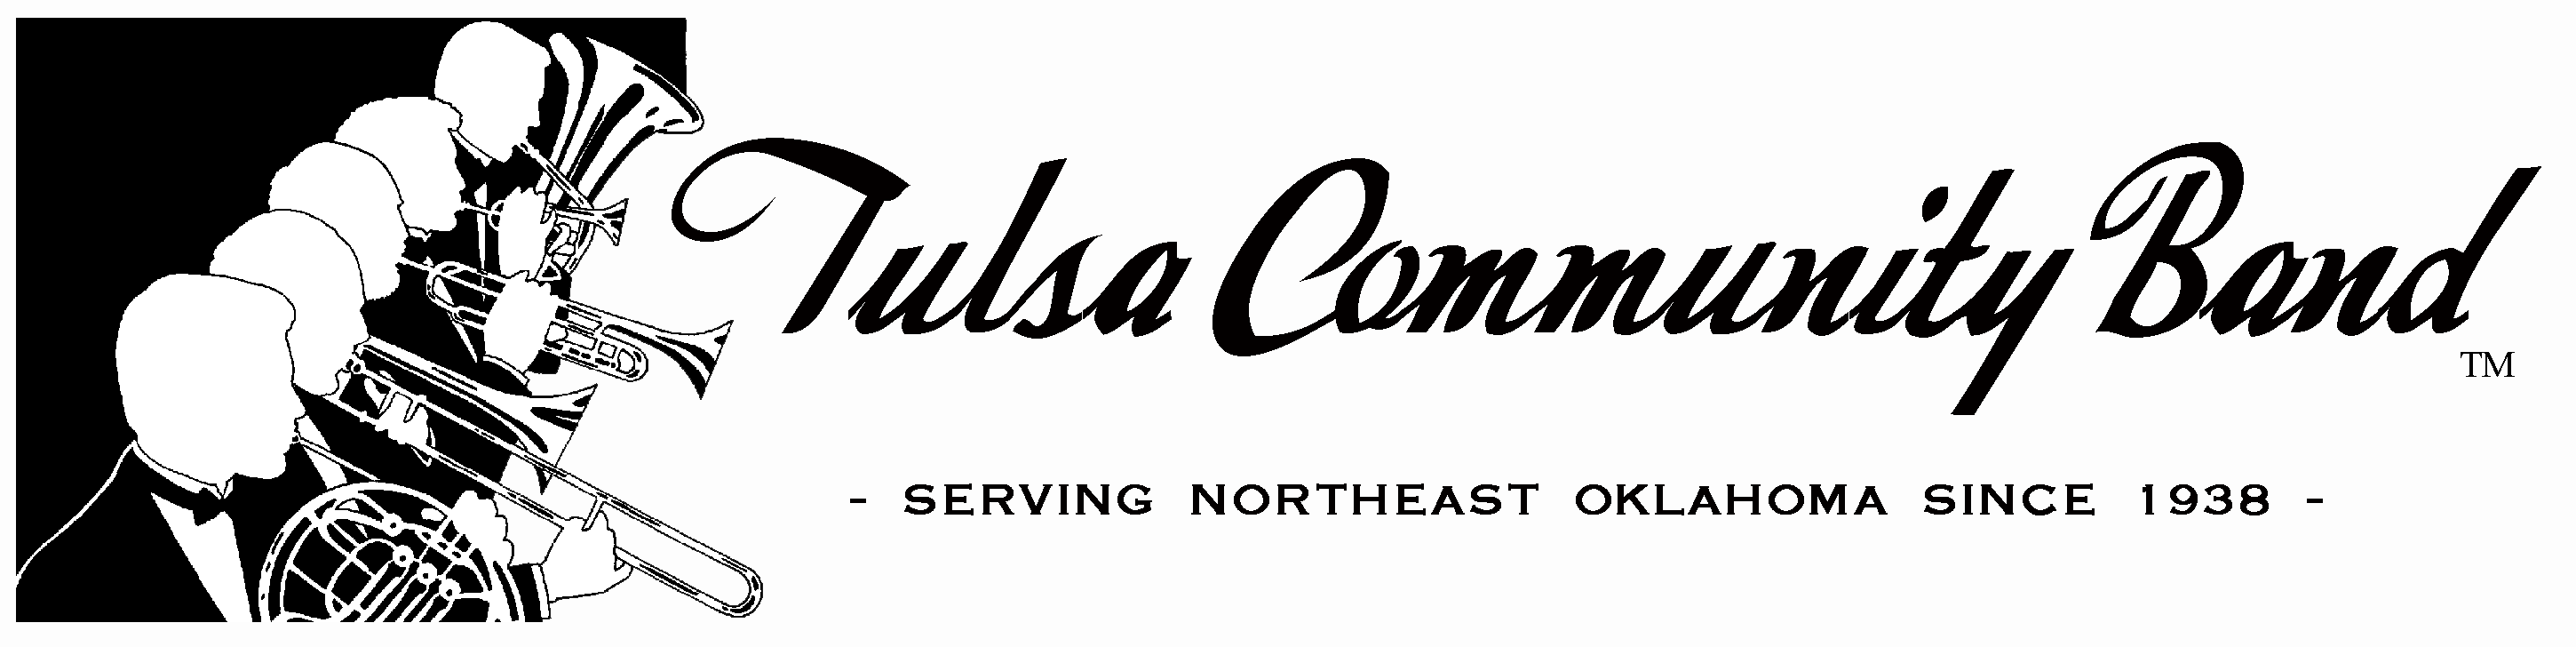 Tulsa Community Band Homepage